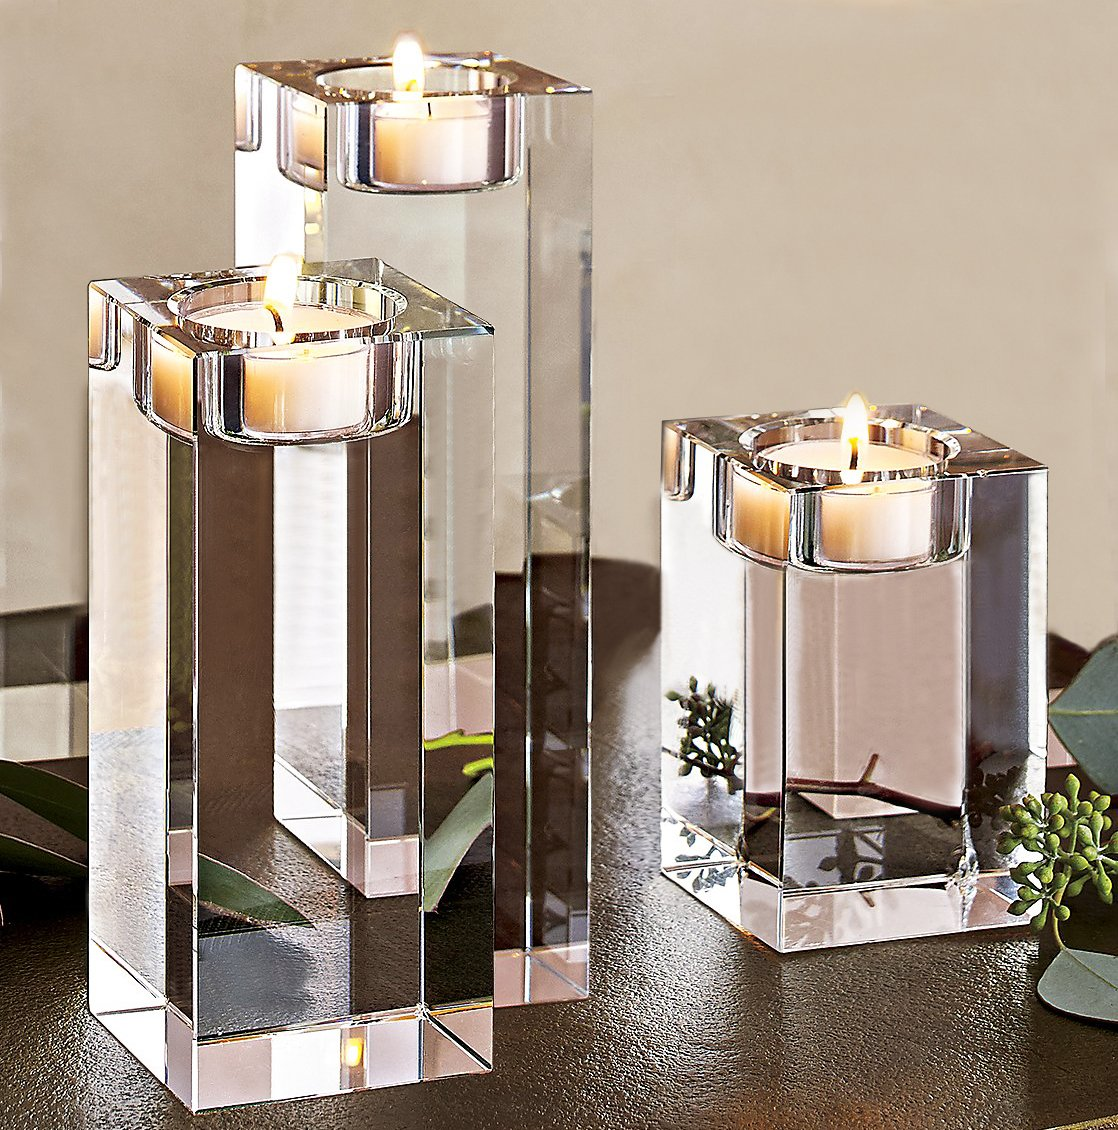 Amazing Home Large Crystal Candle Holders Set of 3, 3.1/4.6/6.2 inches Height,Prepackaged Elegant Heavy Solid Square Tealight Holders Set Centerpieces for Wedding, Home Decor, Ceremony and Anniversary by Amazing Home